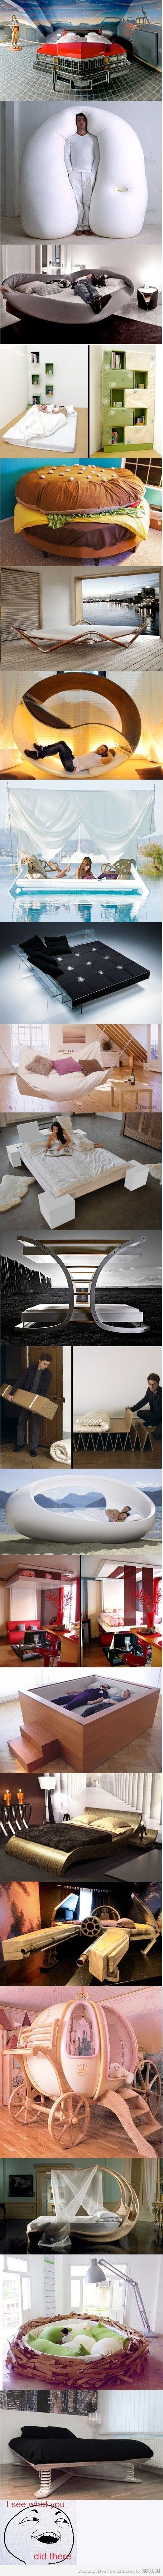 Bed Ideas* I definitely would NOT use the 2nd one...